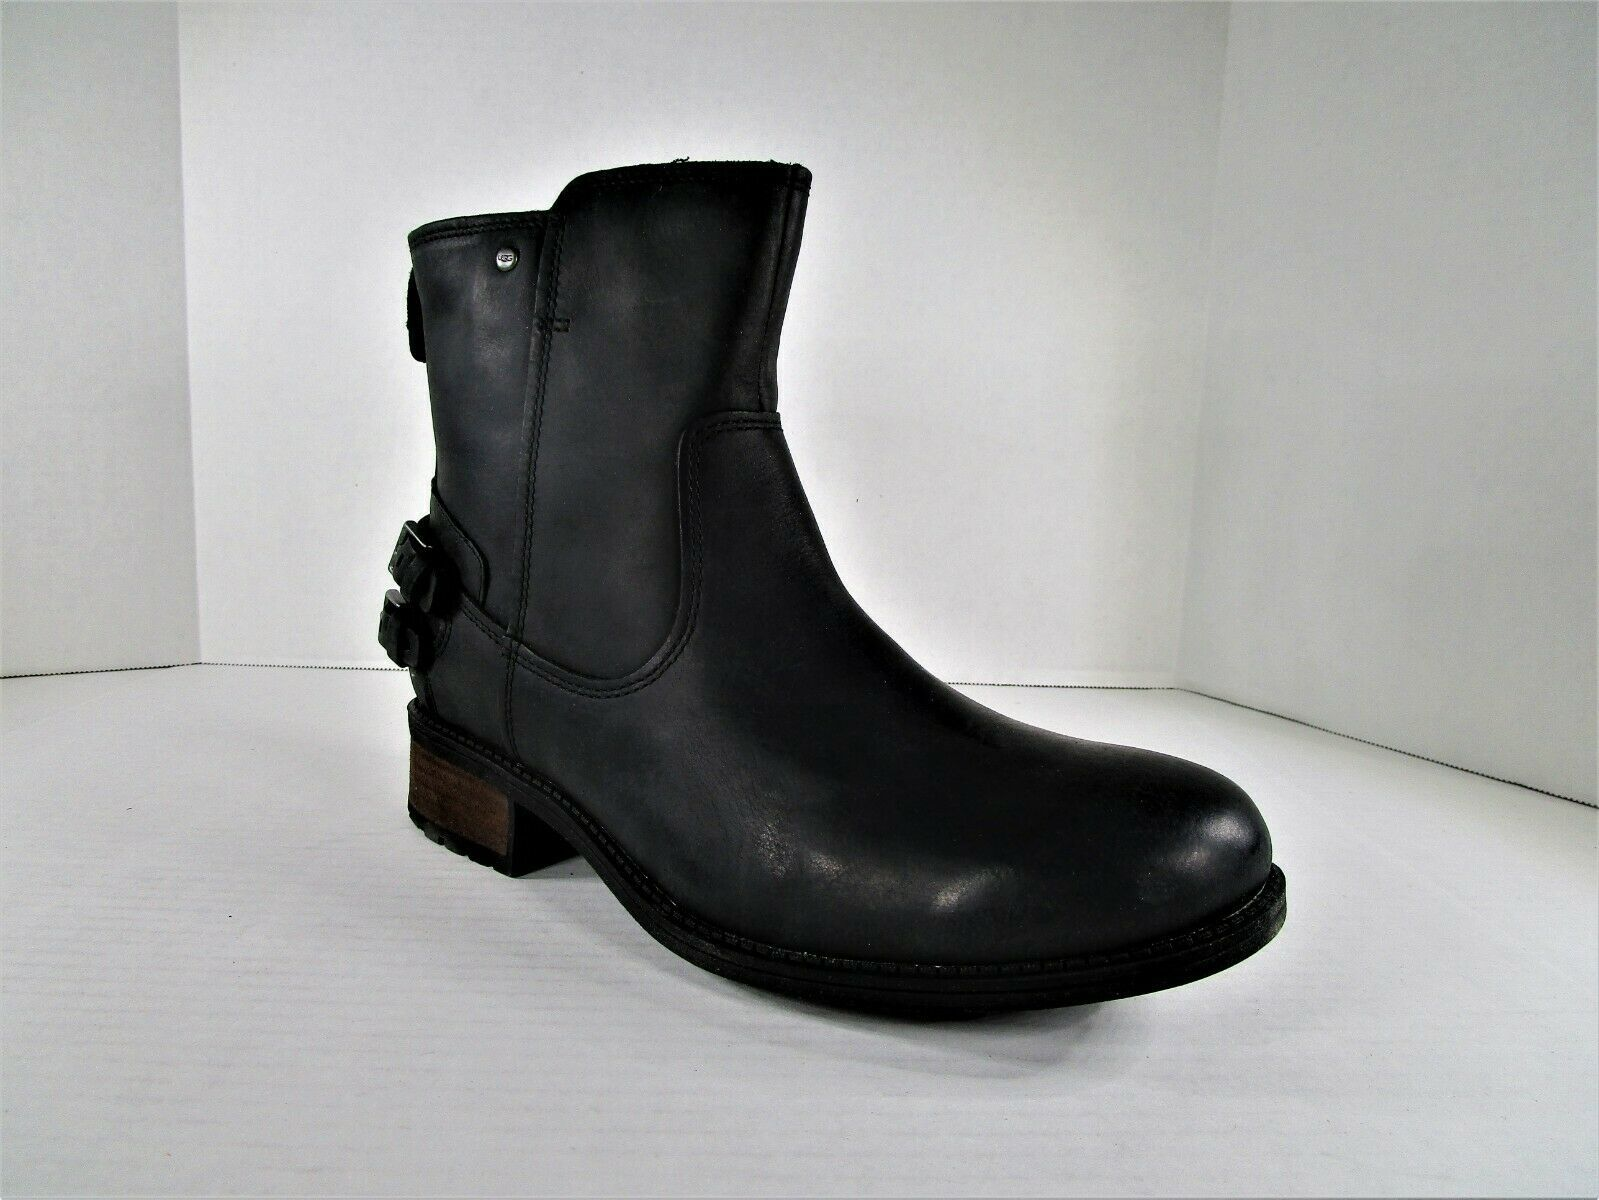 Primary image for Ugg Australia Orion Boot Waterproof Leather 1007769 U.S. Women's Sz 10 Footwear